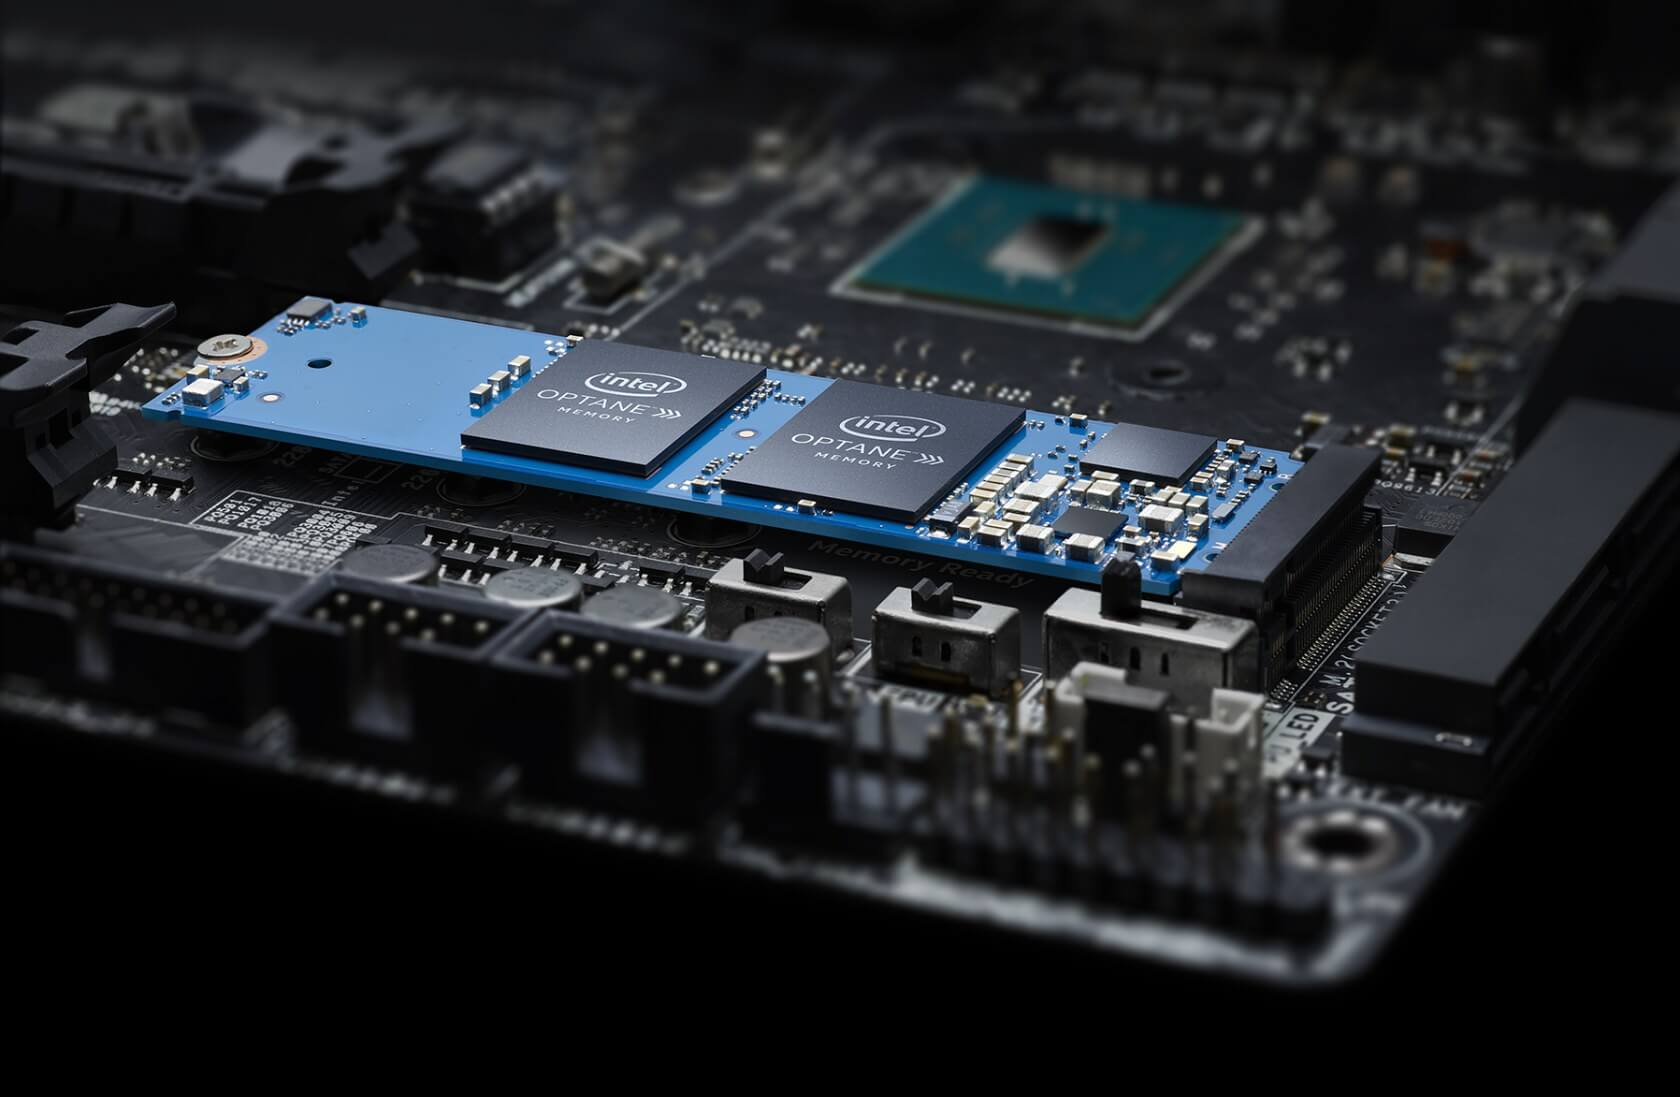 Intel's Optane memory doesn't like the Windows 10 May 2020 update